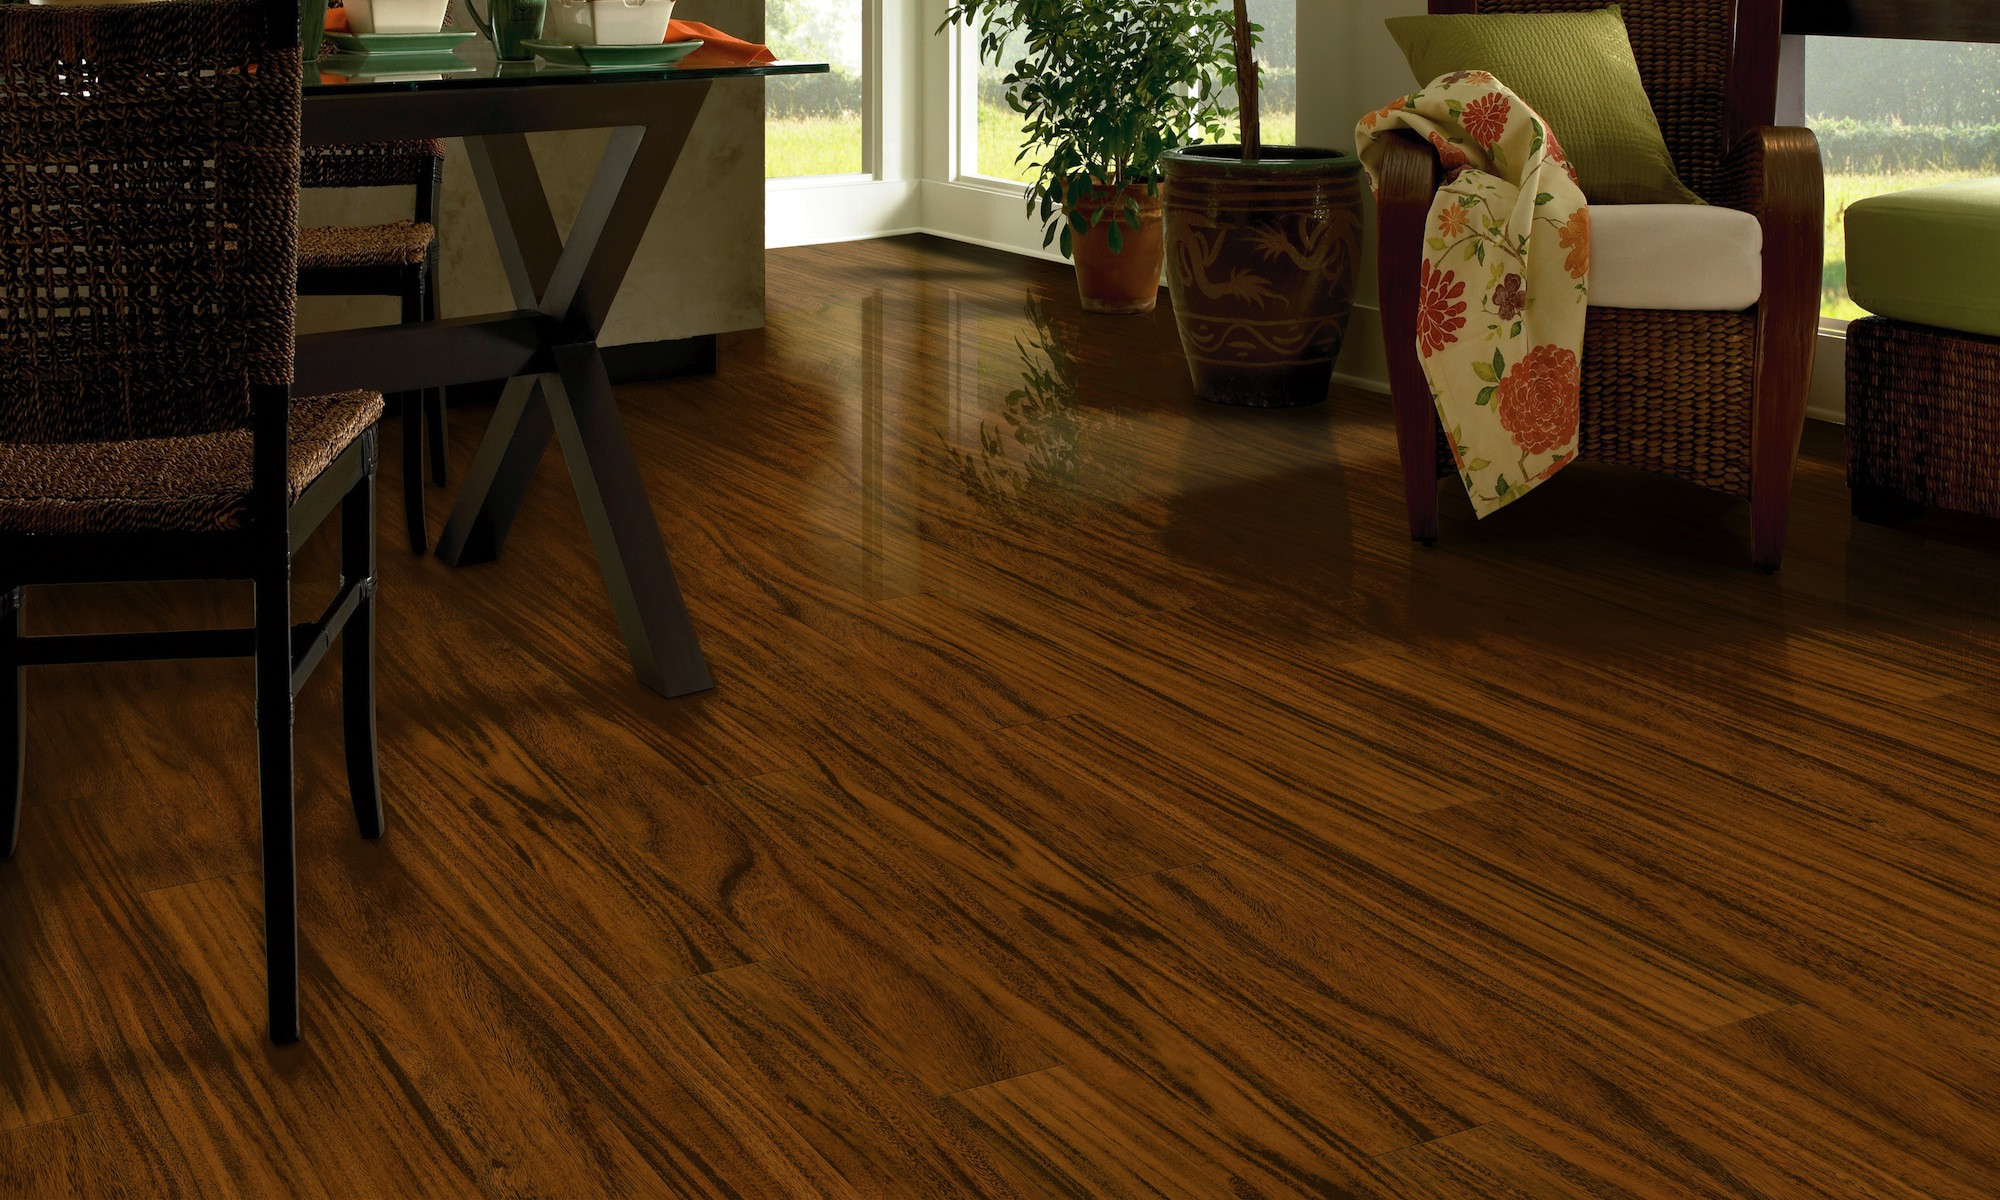 Bruce Maple Cherry Hardwood Flooring Of Laminate Flooring Between Rooms Flooring Ideas Pertaining to Natural Characteristics Of Real Bruce Hardwood Flooring Laminate with Glass top Dining